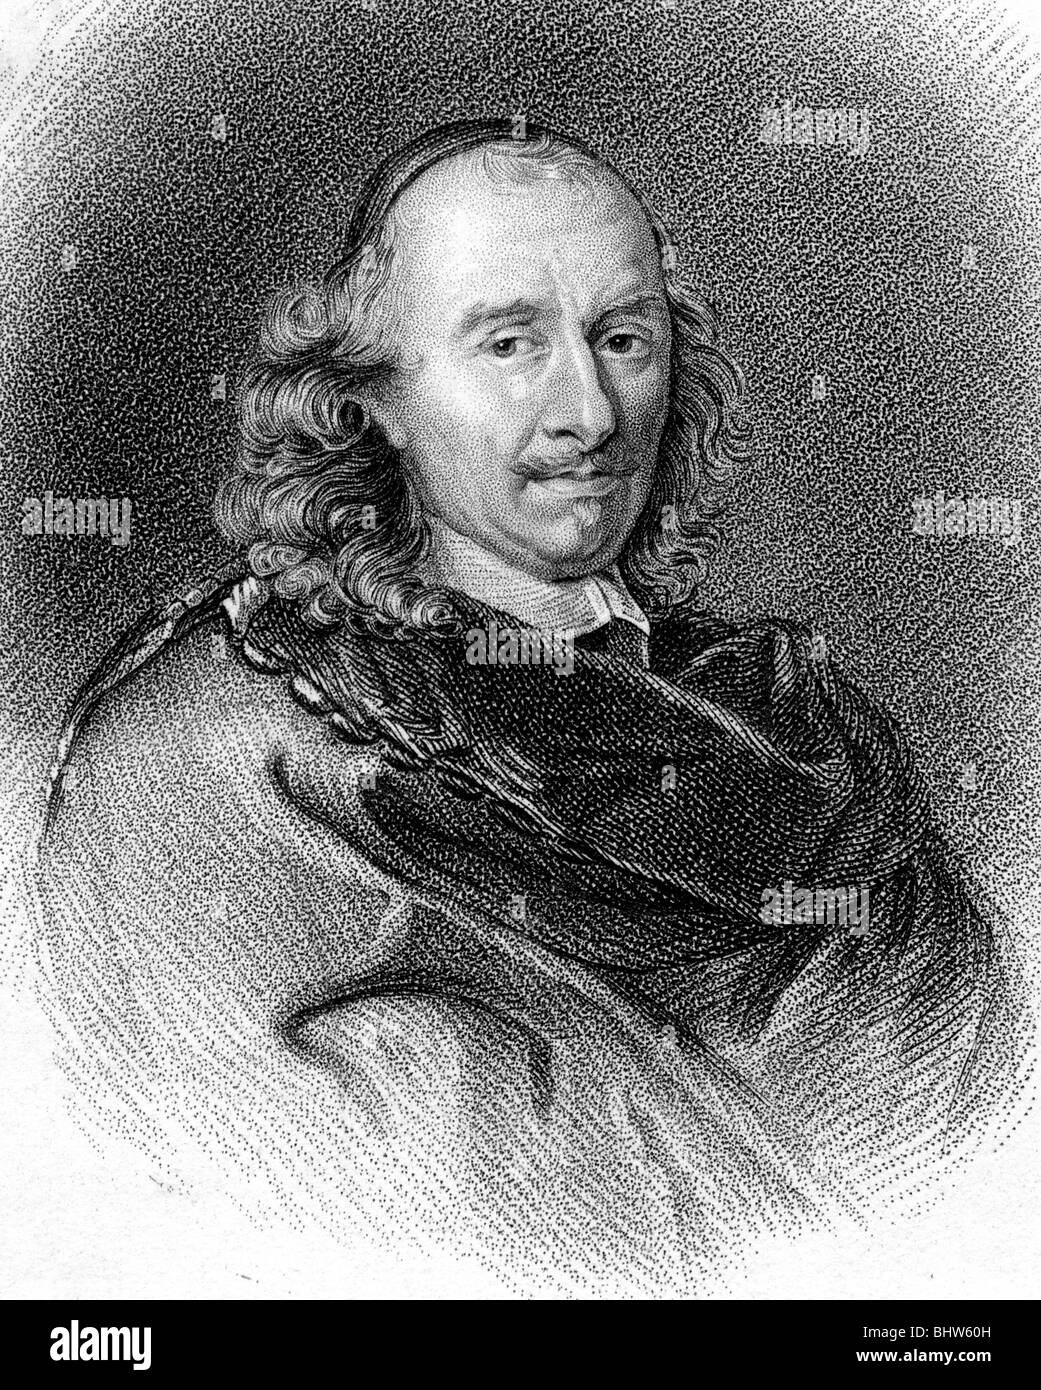 PIERRE CORNEILLE - French dramatist  (1606-84) - Stock Image